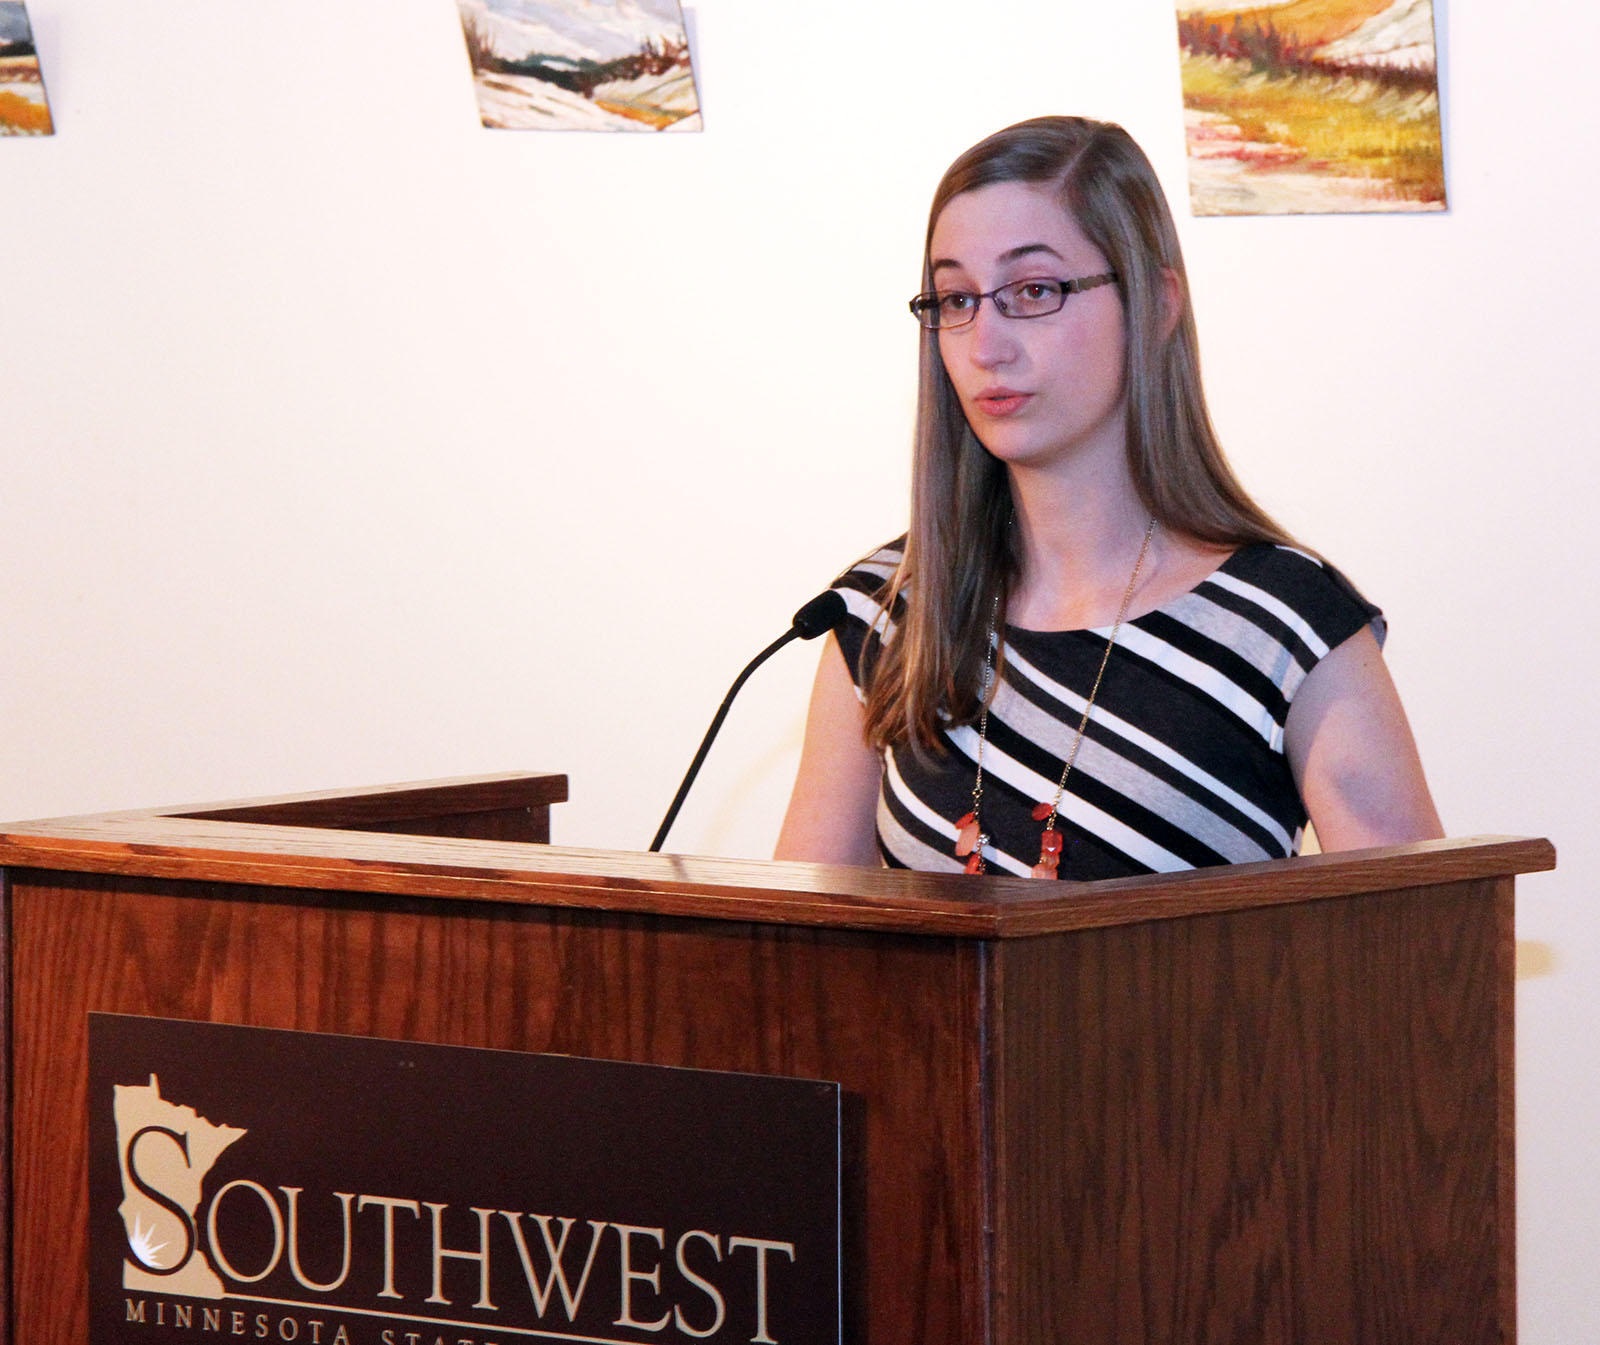 William Whipple scholarship winner Rita Fonder delivers a talk at the Whipple Luncheon